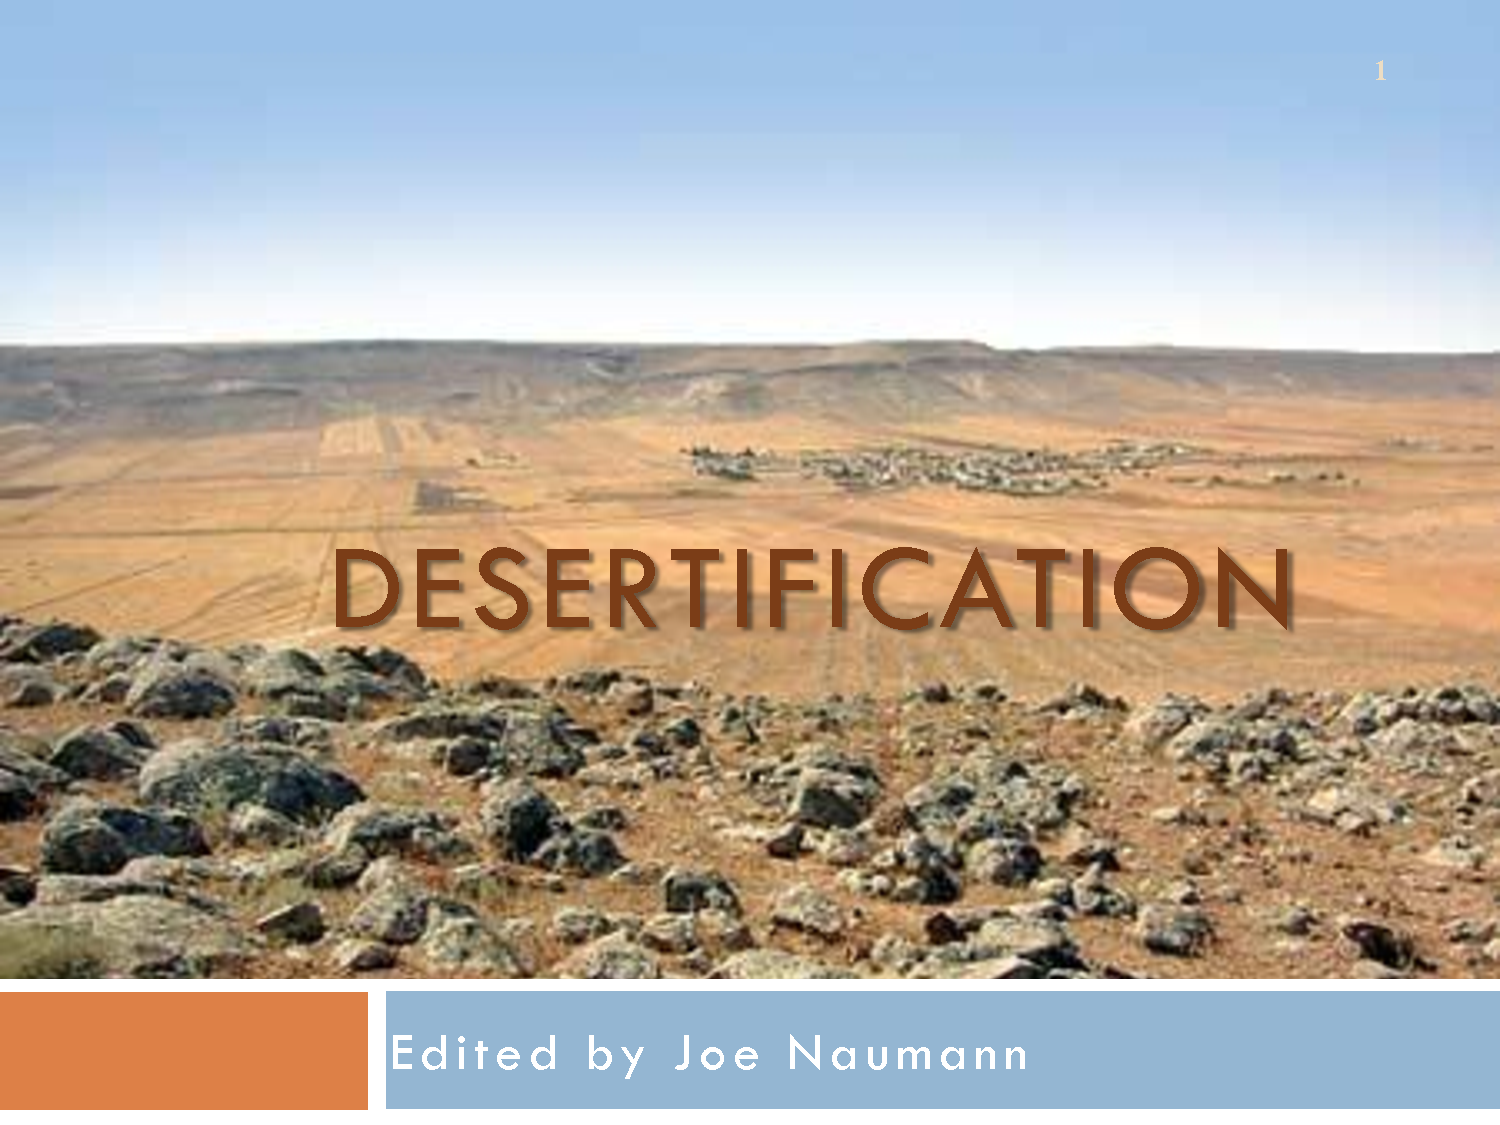 the features of desertification and its reasons The reasons were unclear,  canada has, for now, recognized the link between desertification and many of its development priorities,.